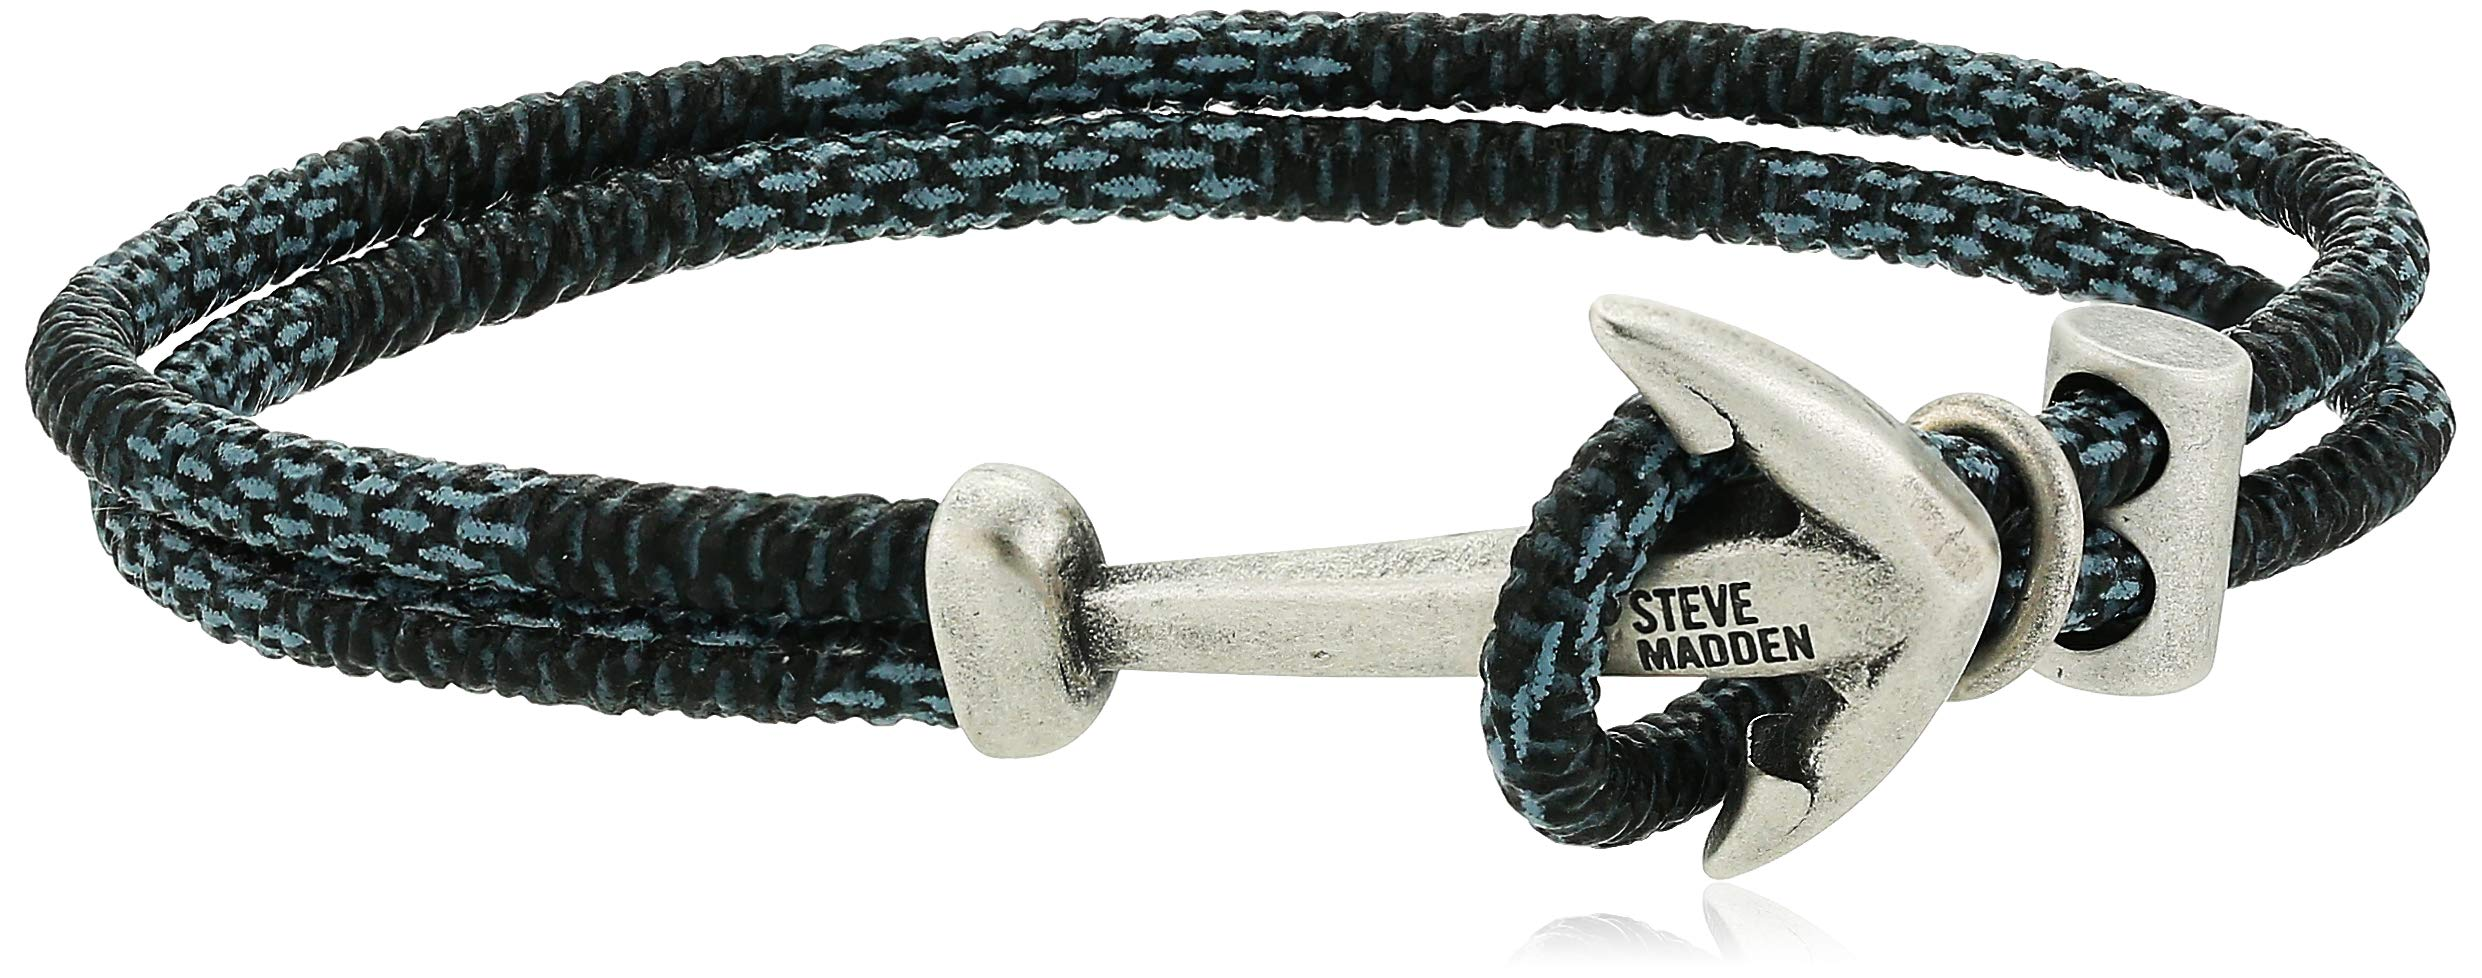 Steve Madden Mens Ombre Braided Leather Bracelet with Anchor Hook